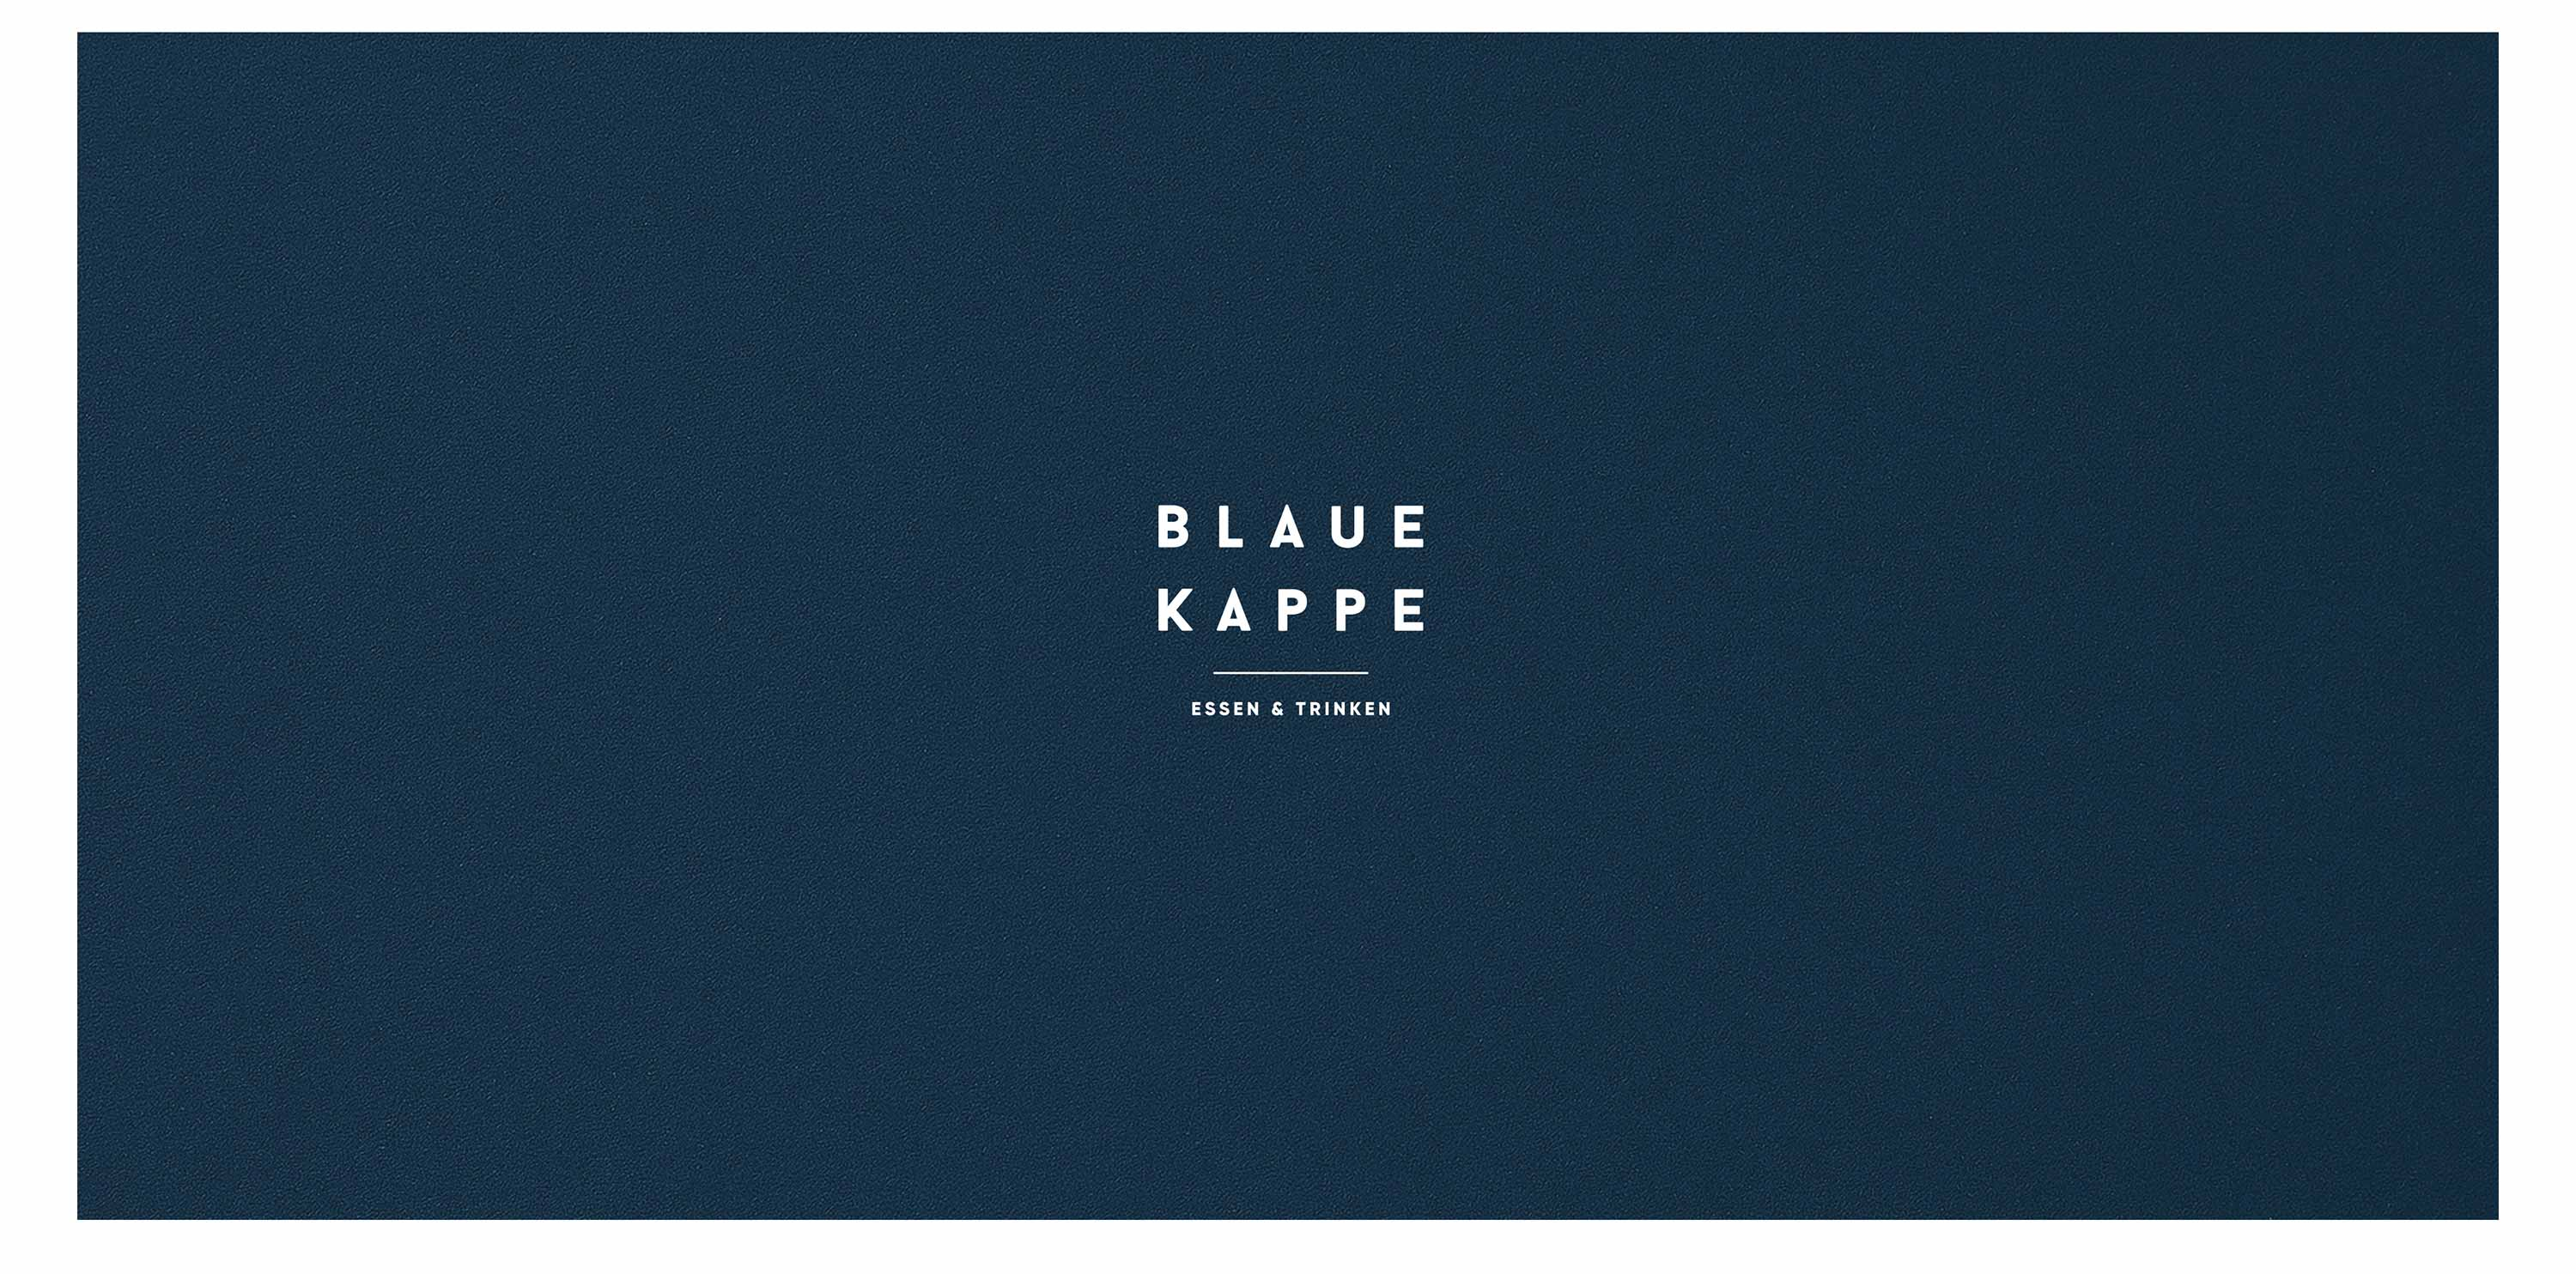 12-blaue-kappe-restaurant-augsburg-essen-trinken-corporate-design-branding-website-logo